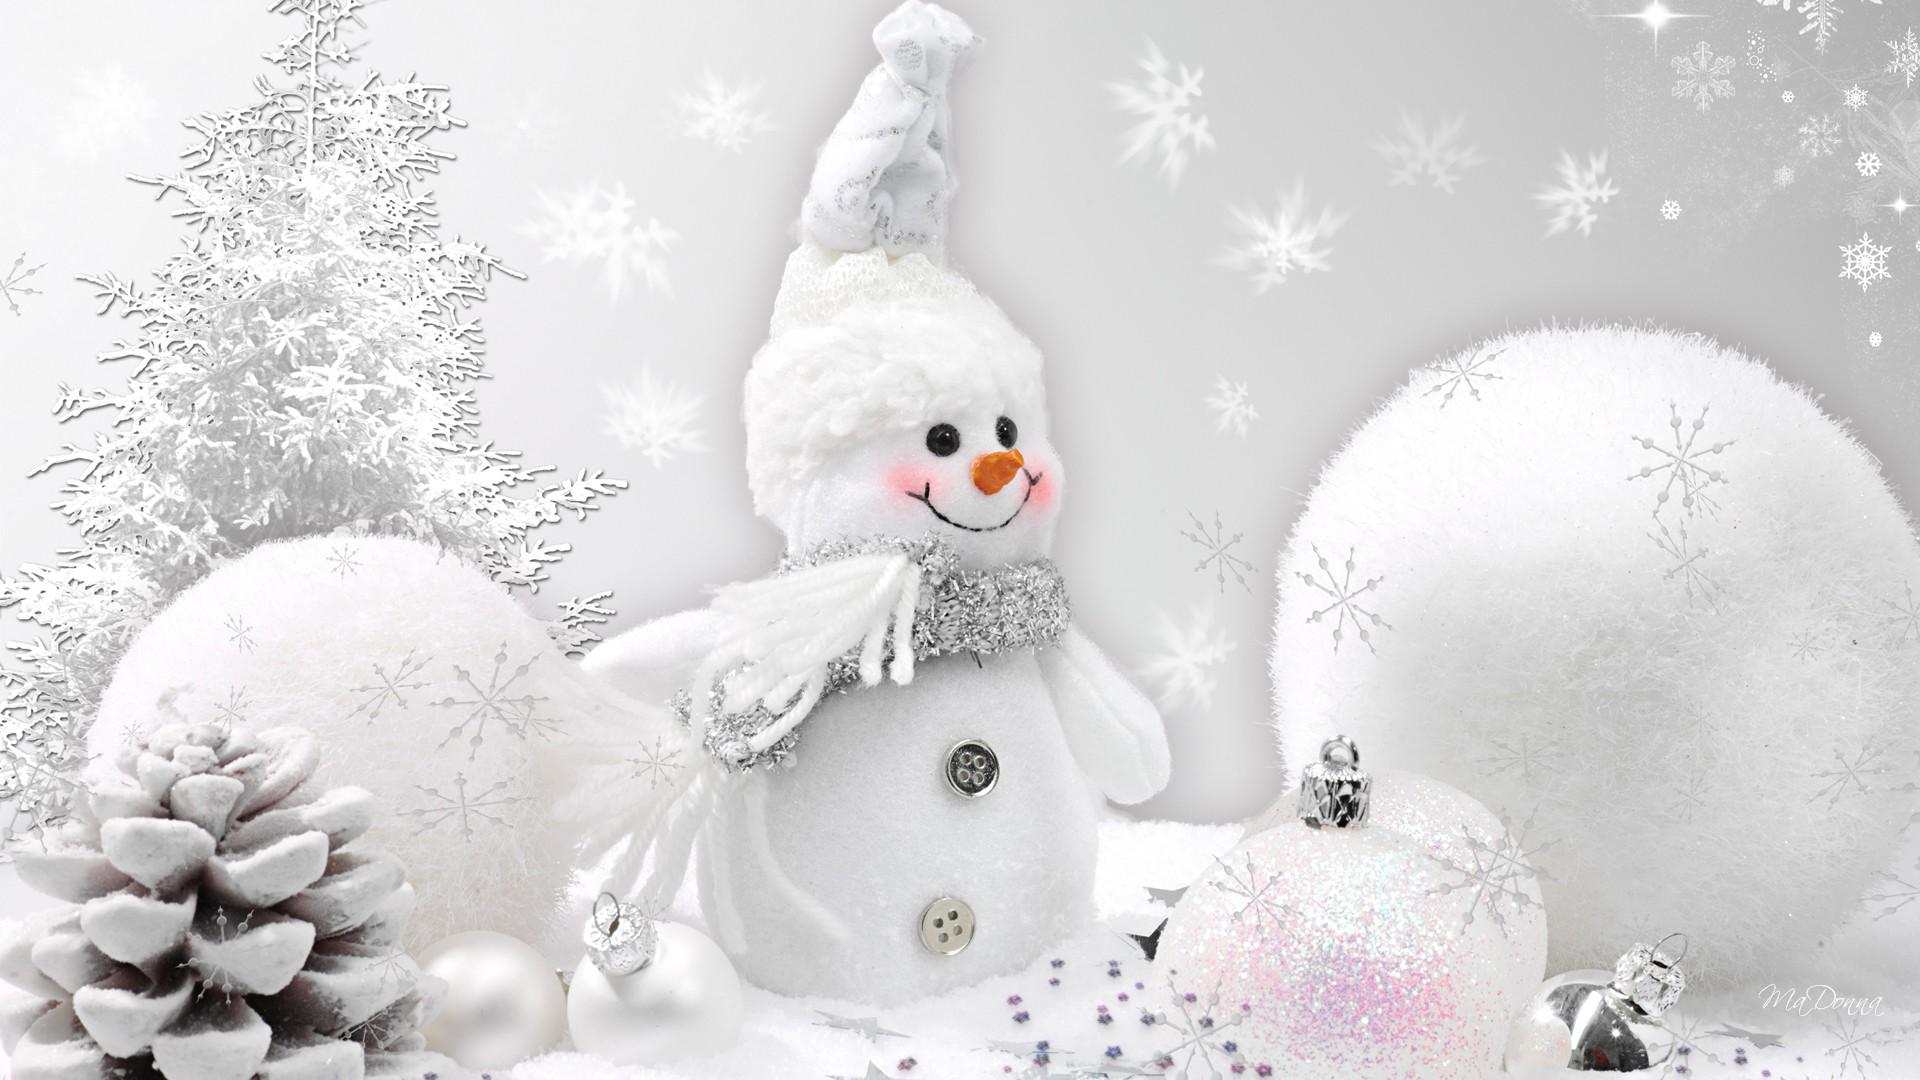 Christmas Snowman Wallpapers High Quality